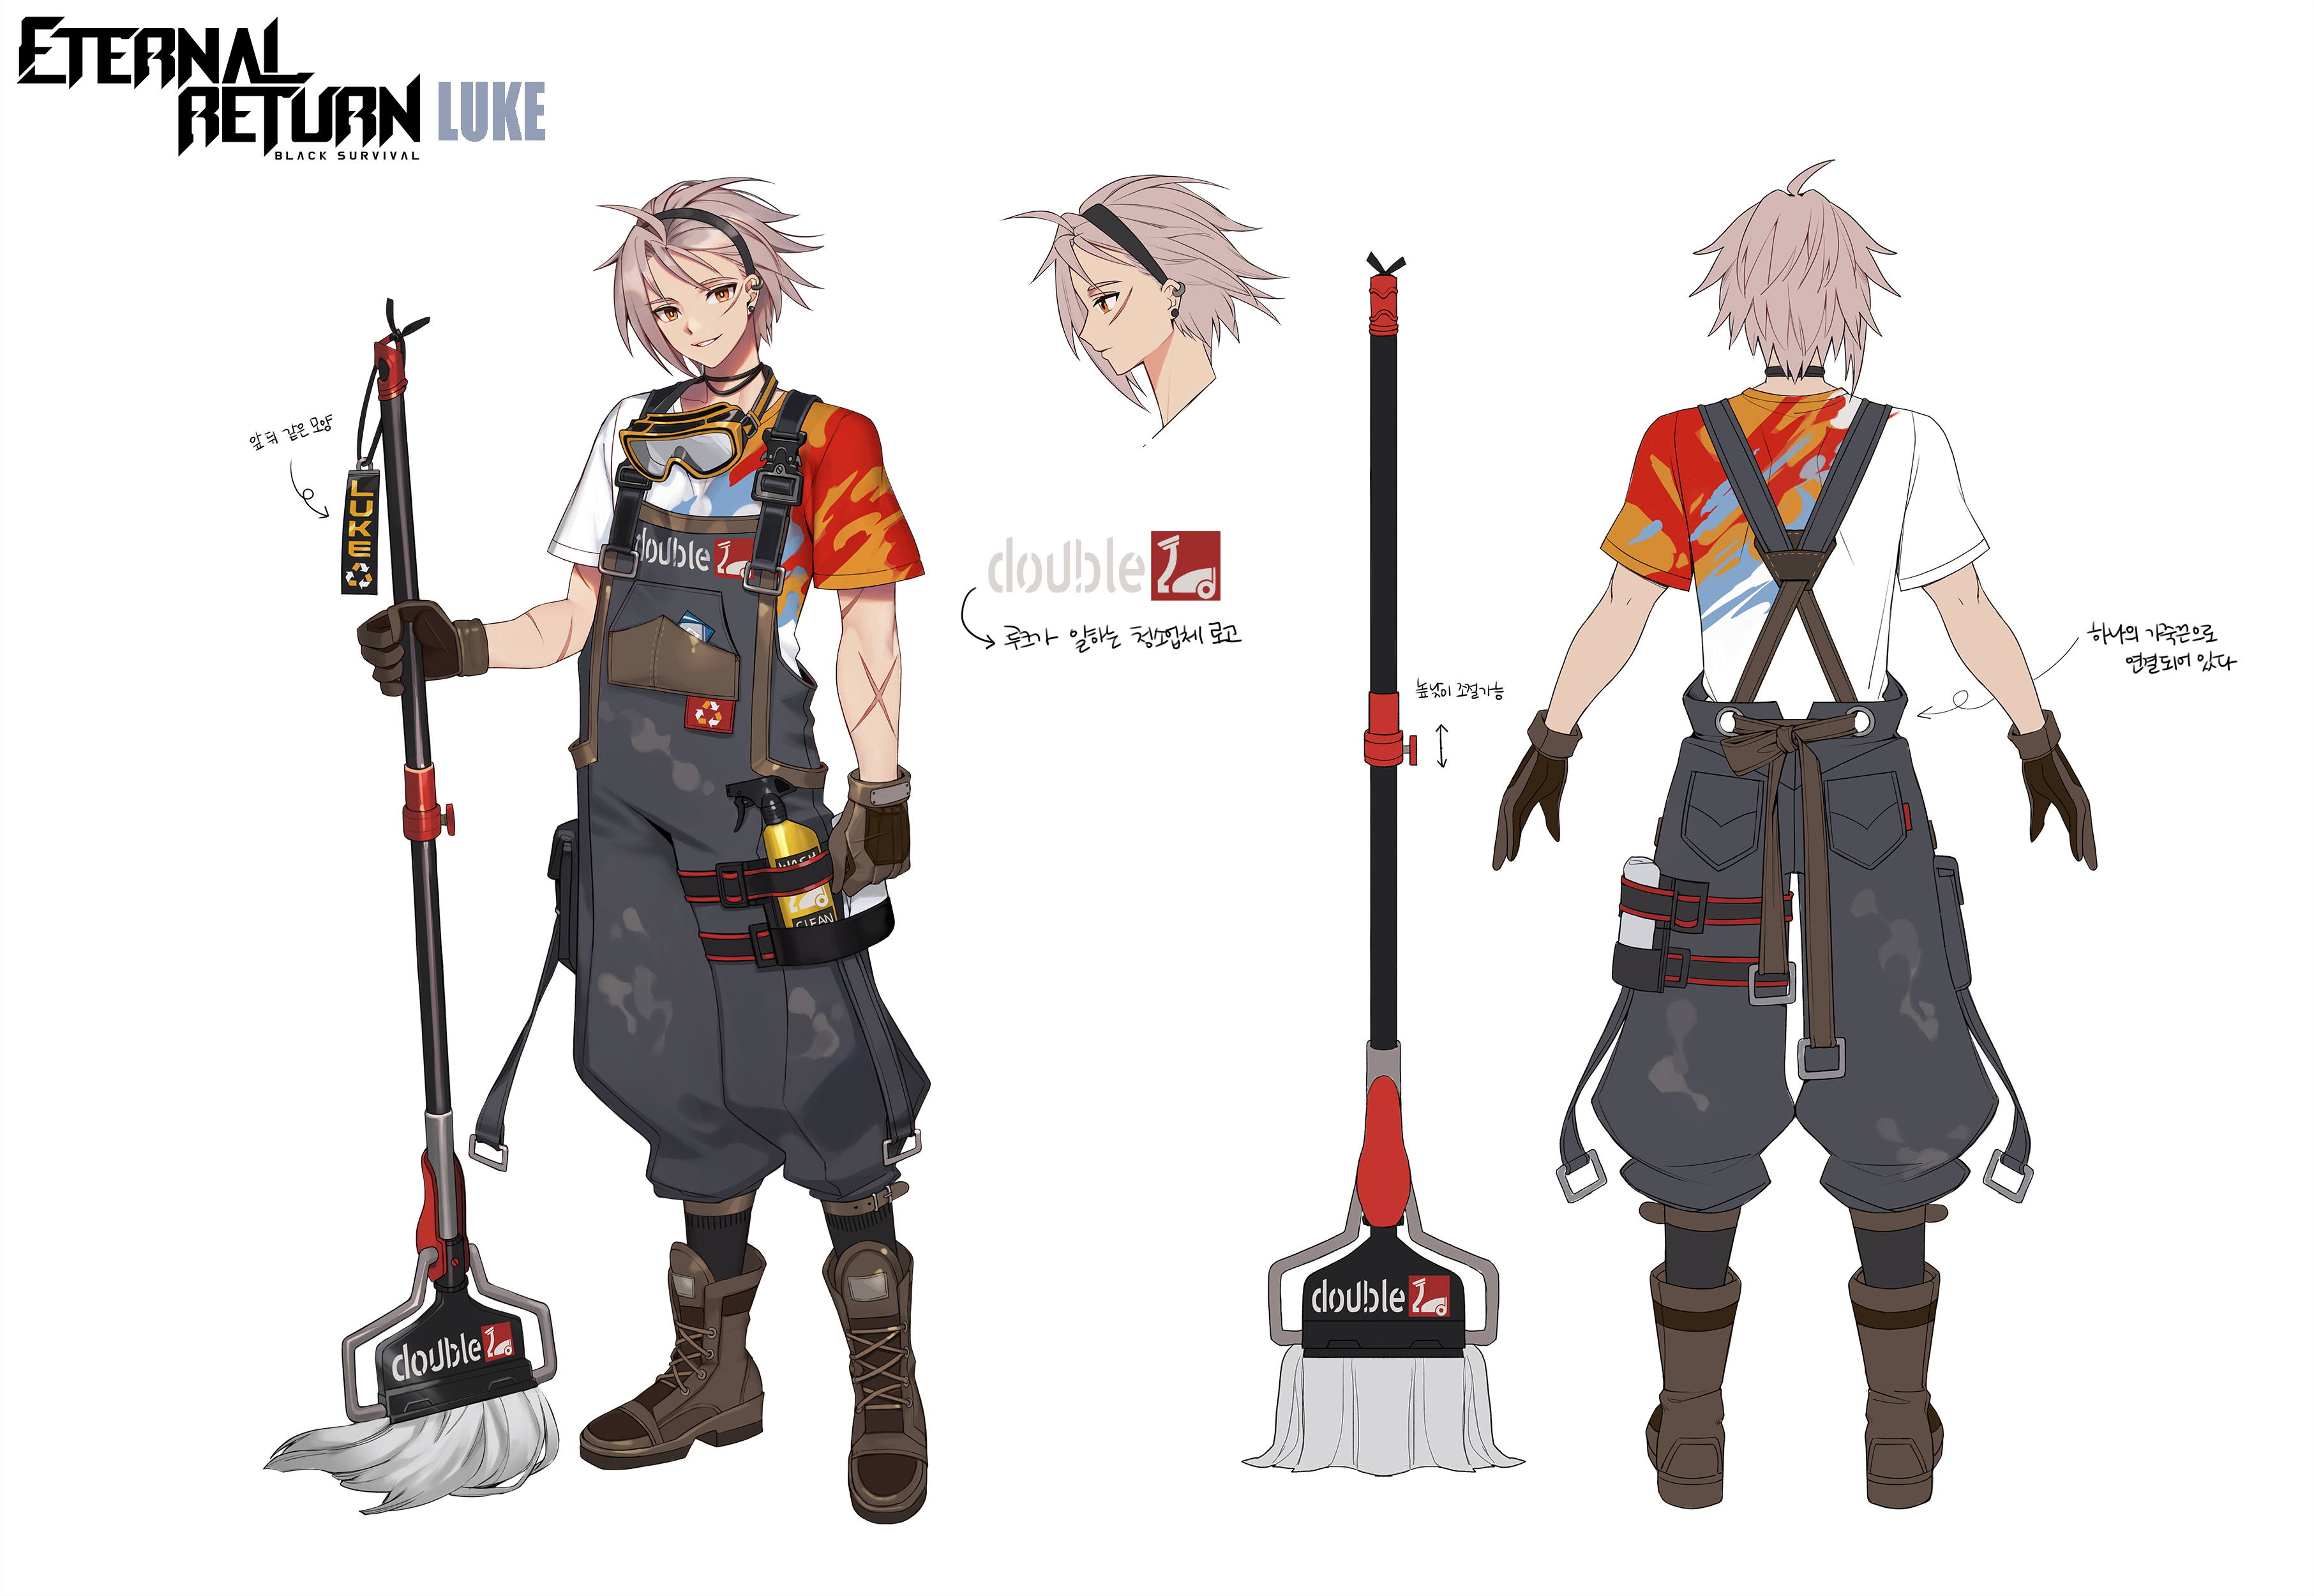 [New Character] Luke Concept Art